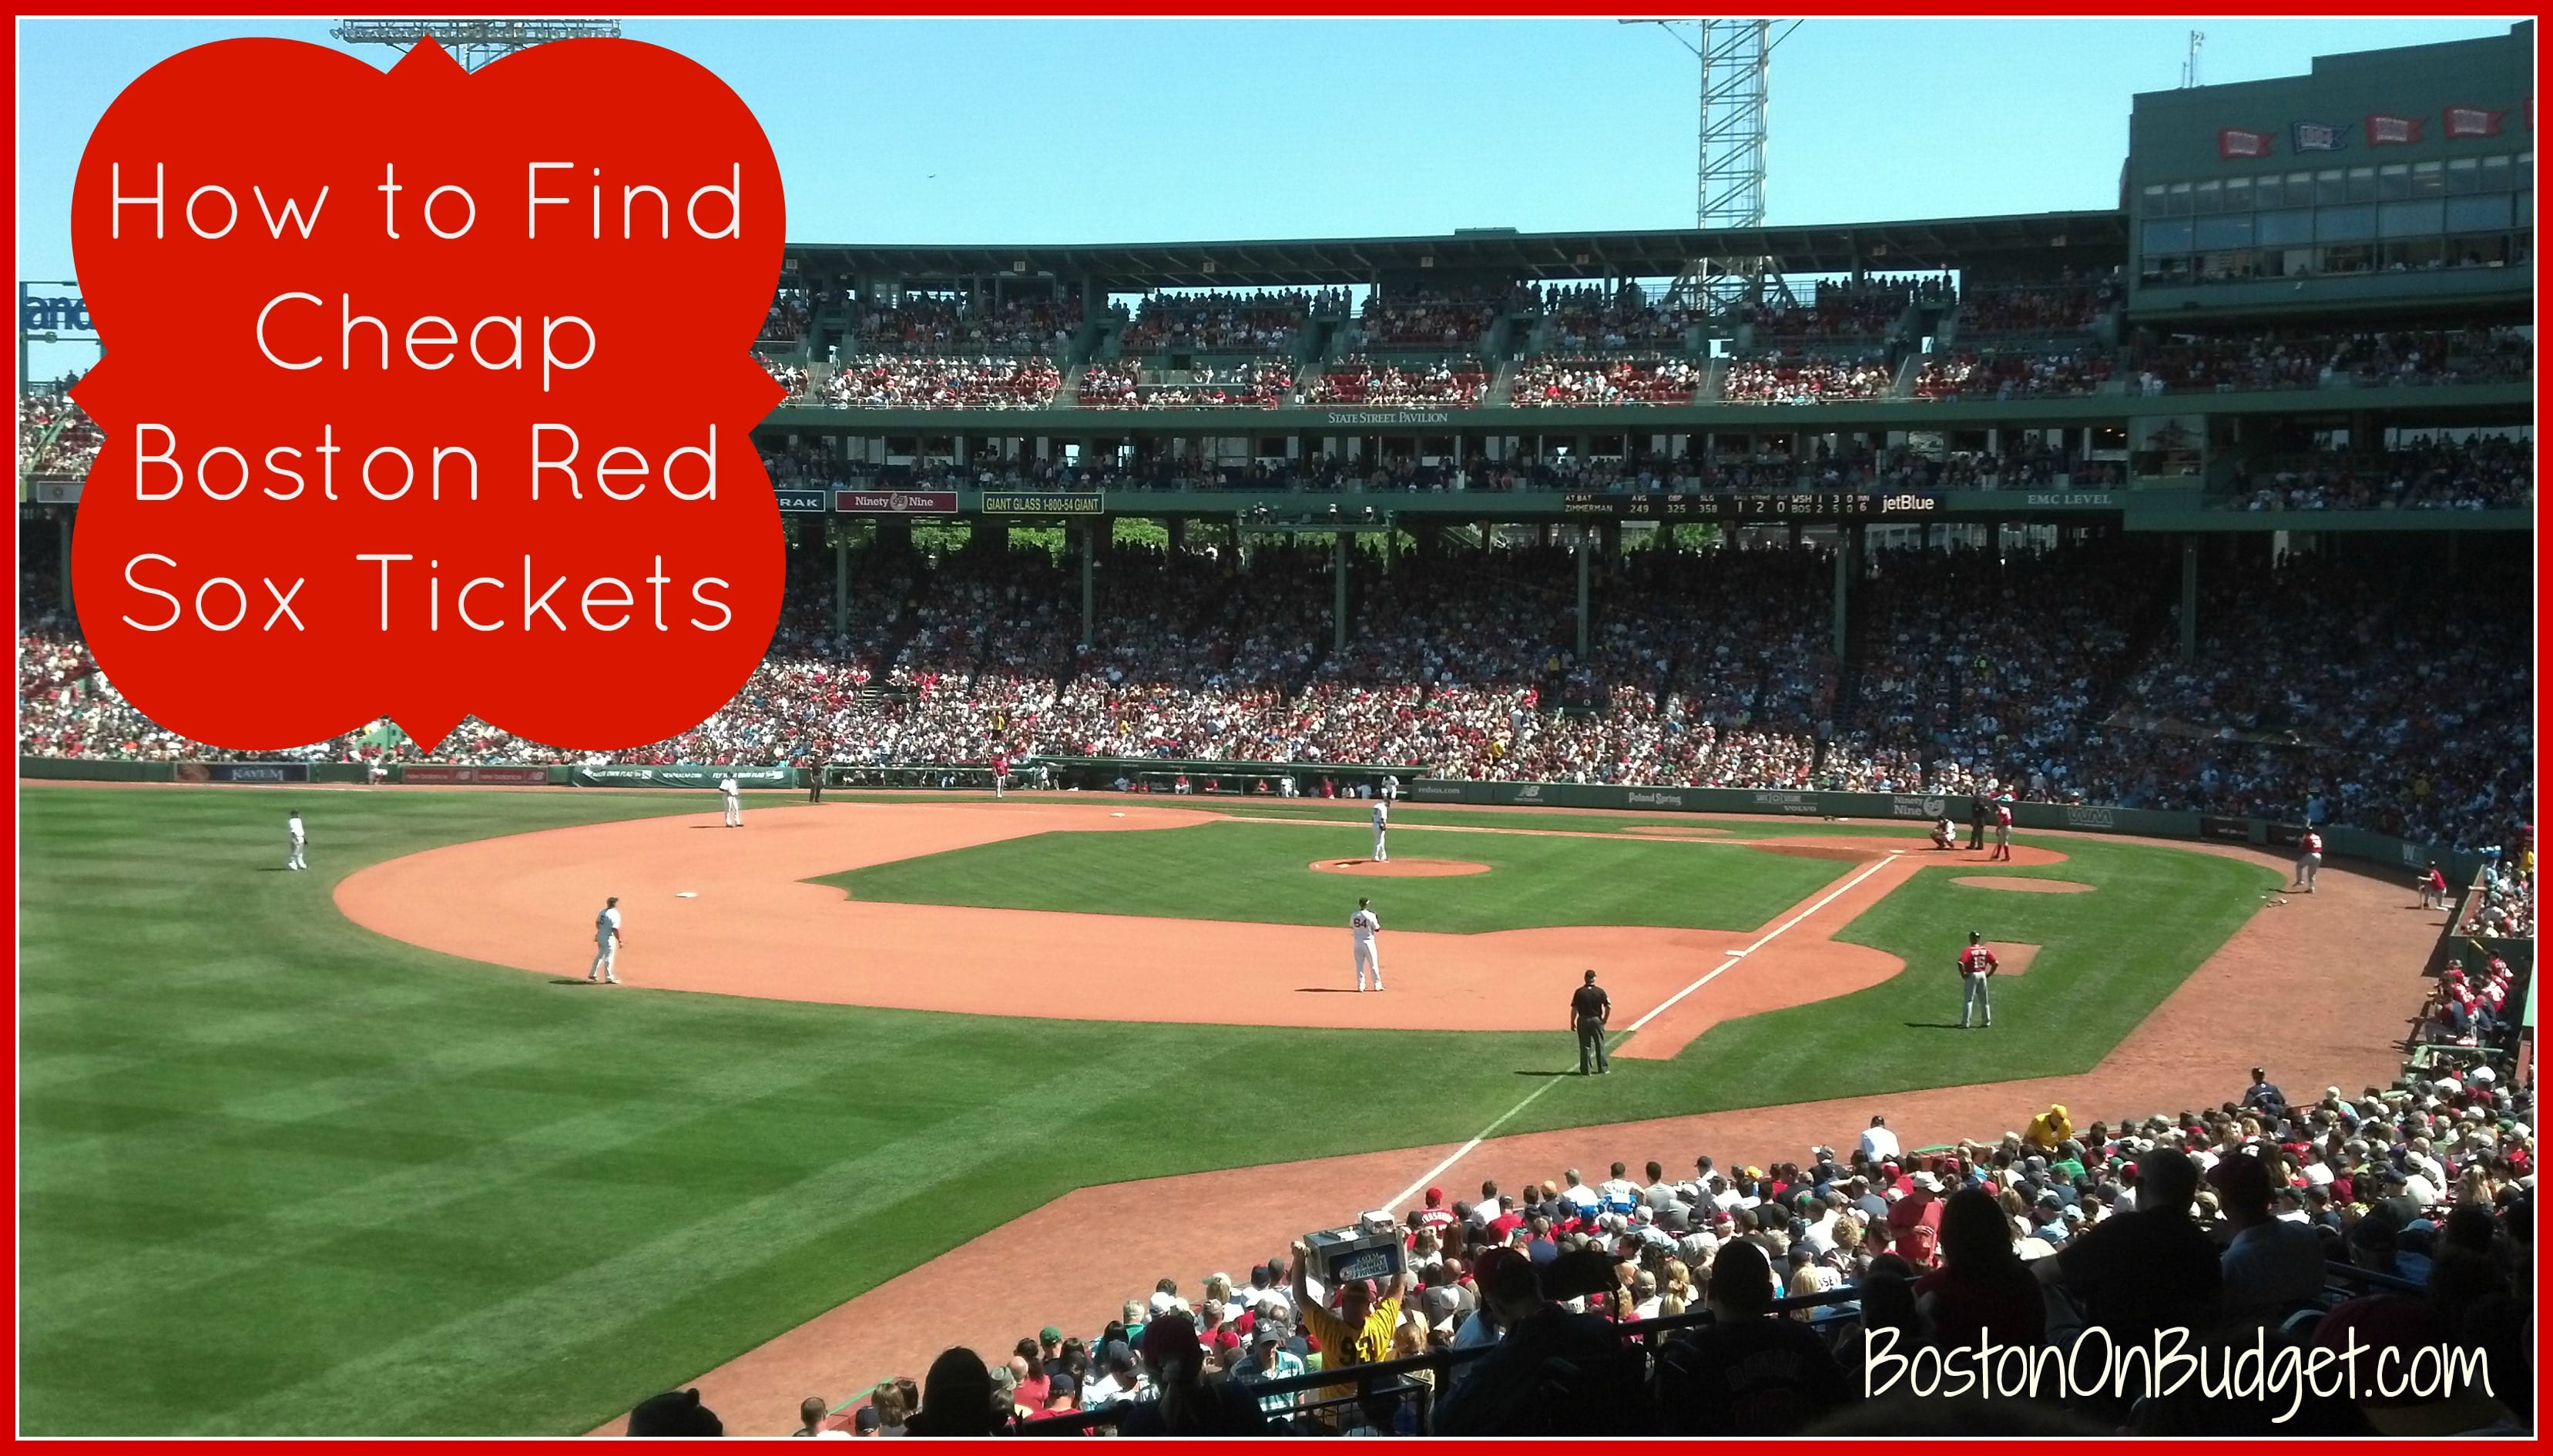 How to Save at Fenway Park: Find Cheap Red Sox Tickets - Boston on